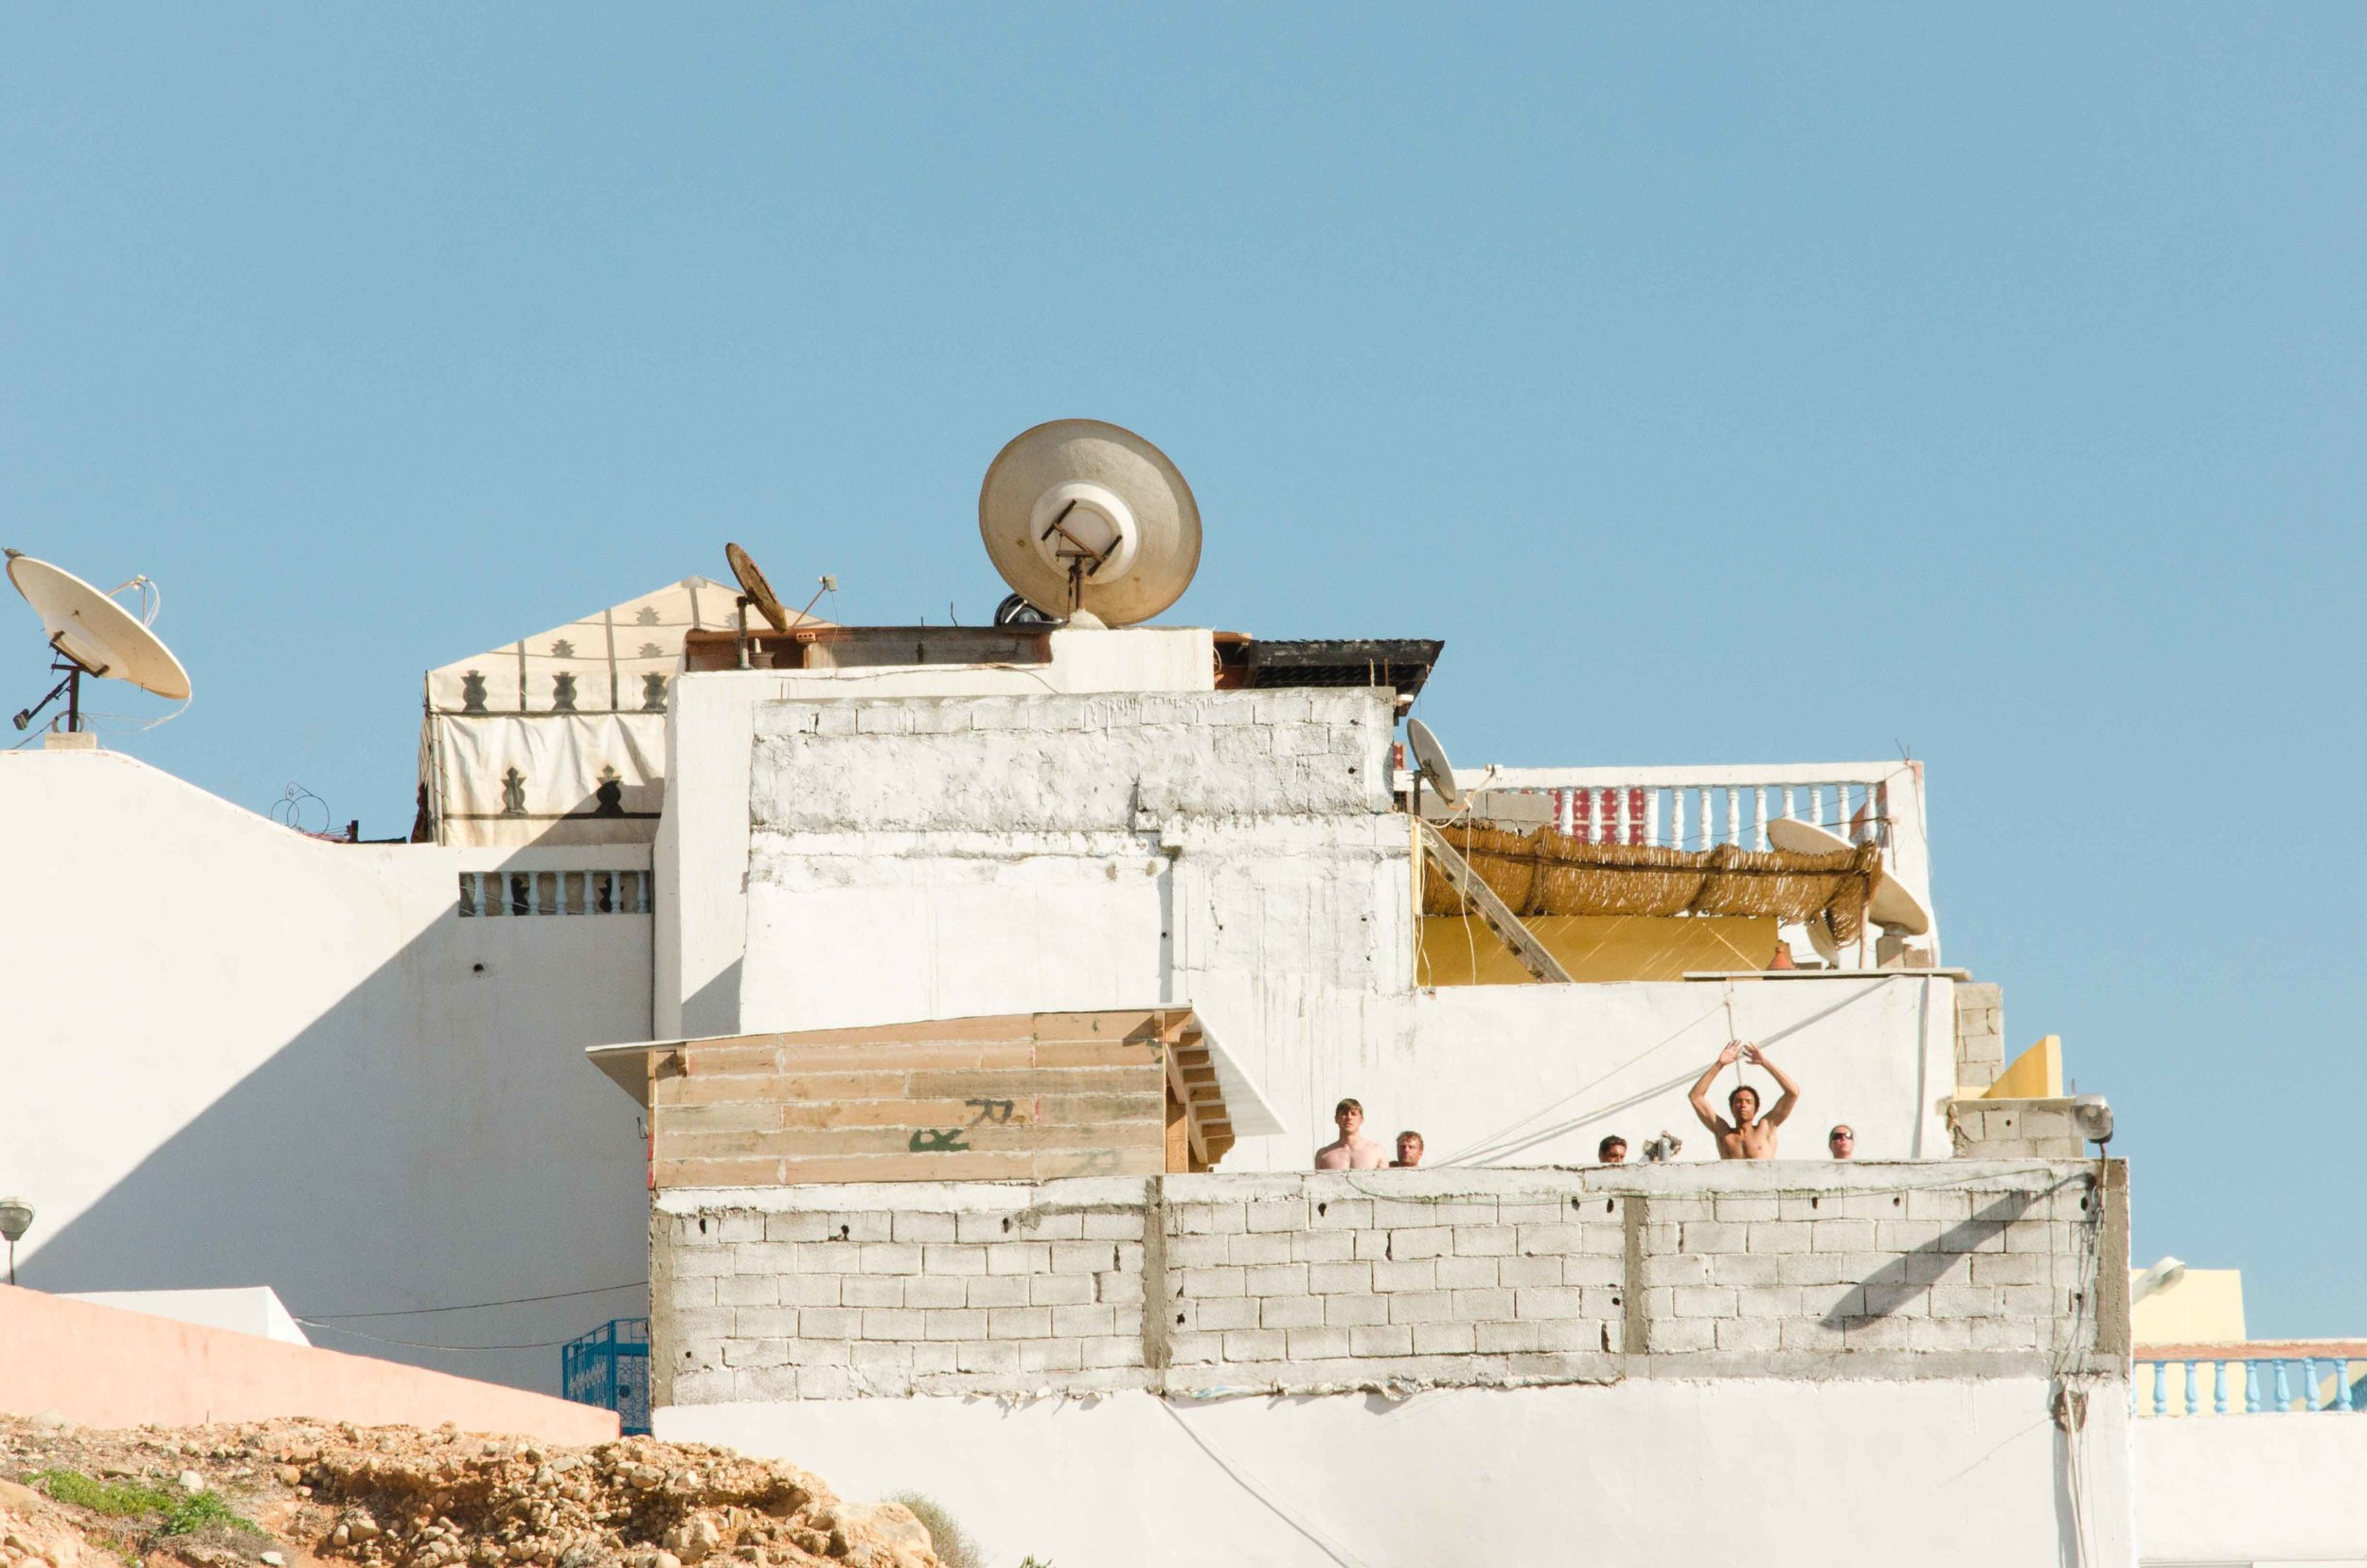 Shot in Morocco; I was having a stroll at the beach and the architecture caught my attention; upon a closer look, I noticed that there were a bunch of people exercising vigorously on the rooftop!